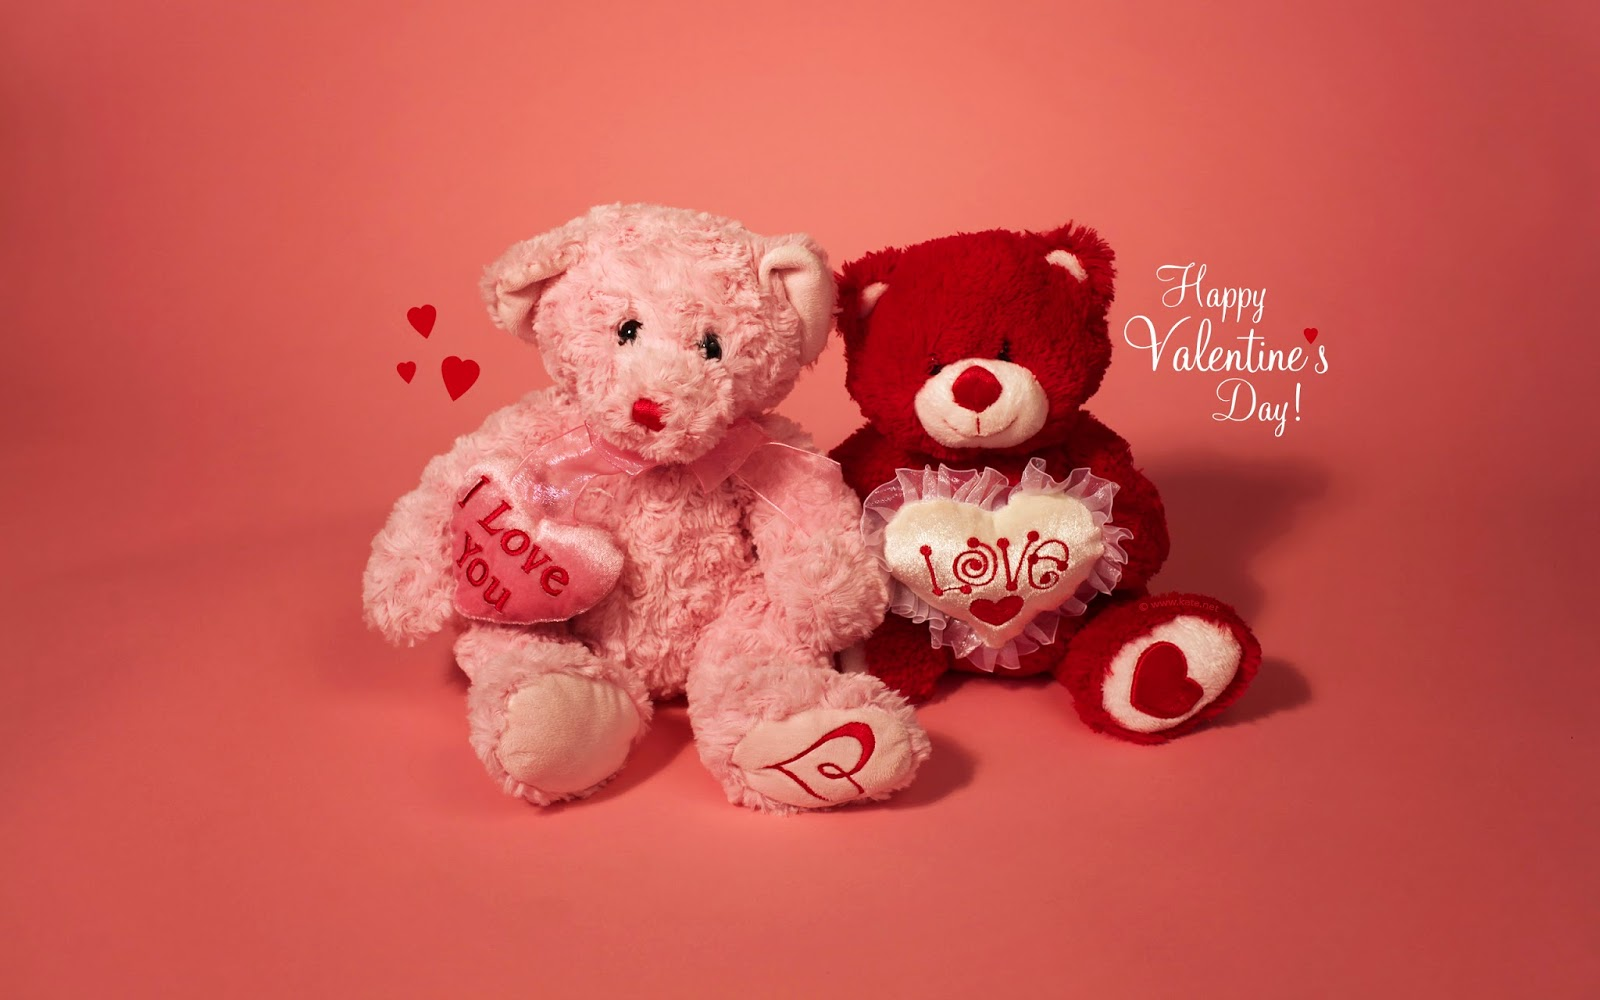 I Love You Valentine Wallpapers